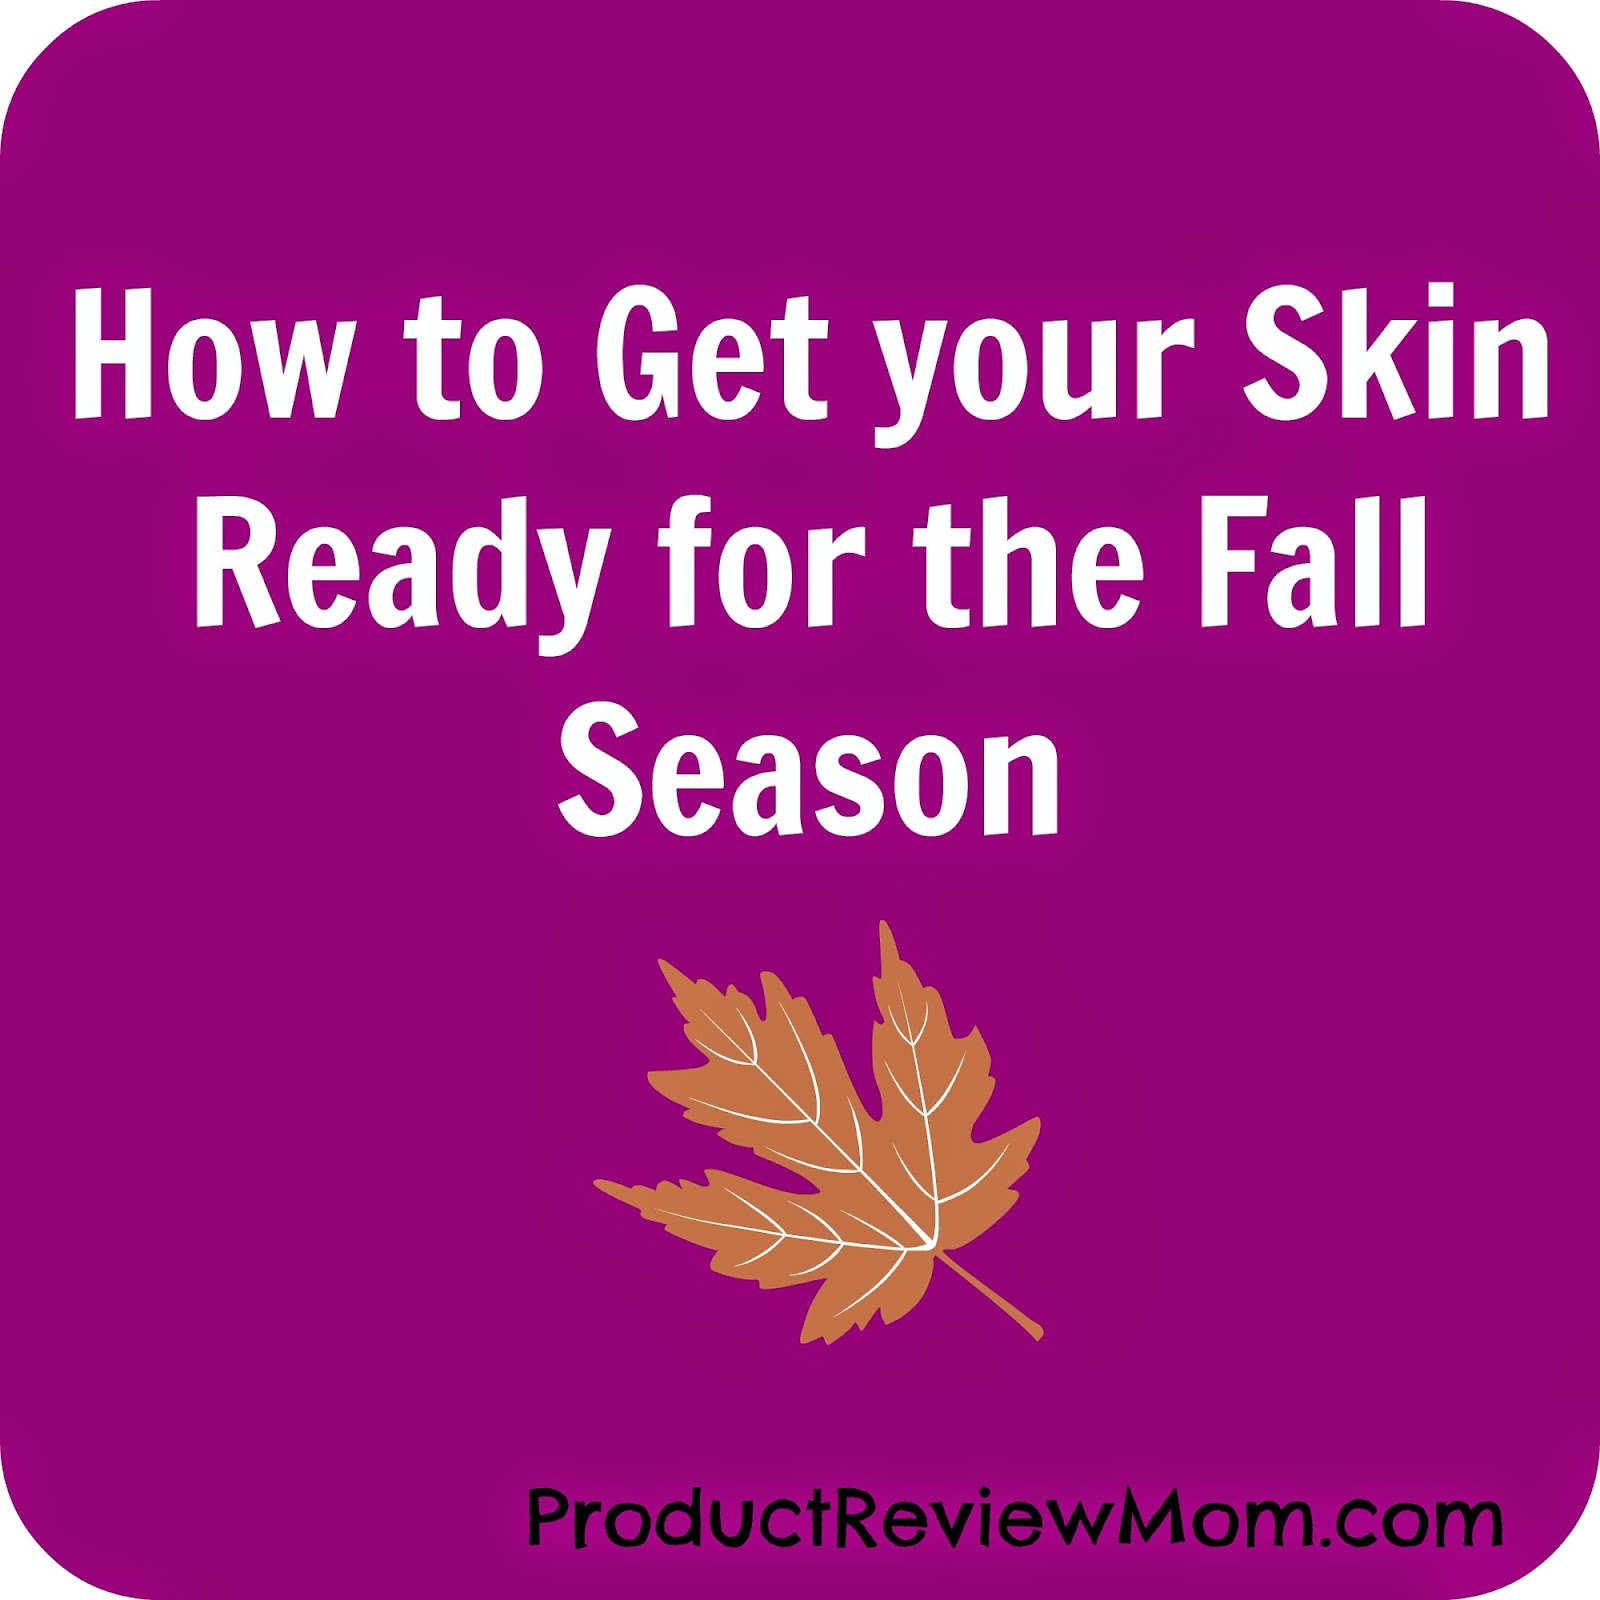 How to Get your Skin Ready for the Fall Season #SkinCare via www.productreviewmom.com